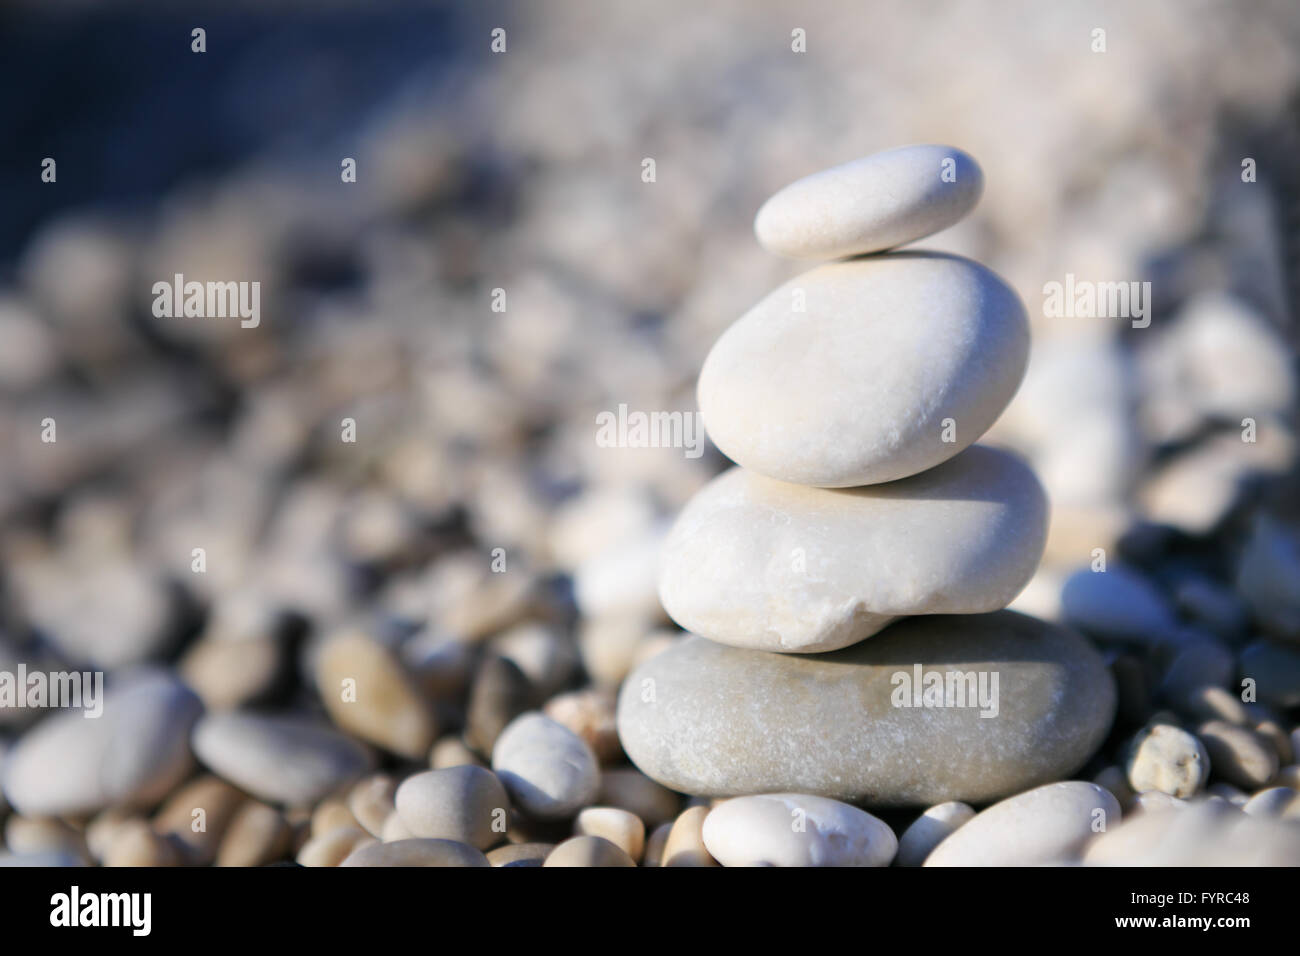 Zen and balance concept – pebble stones - Stock Image